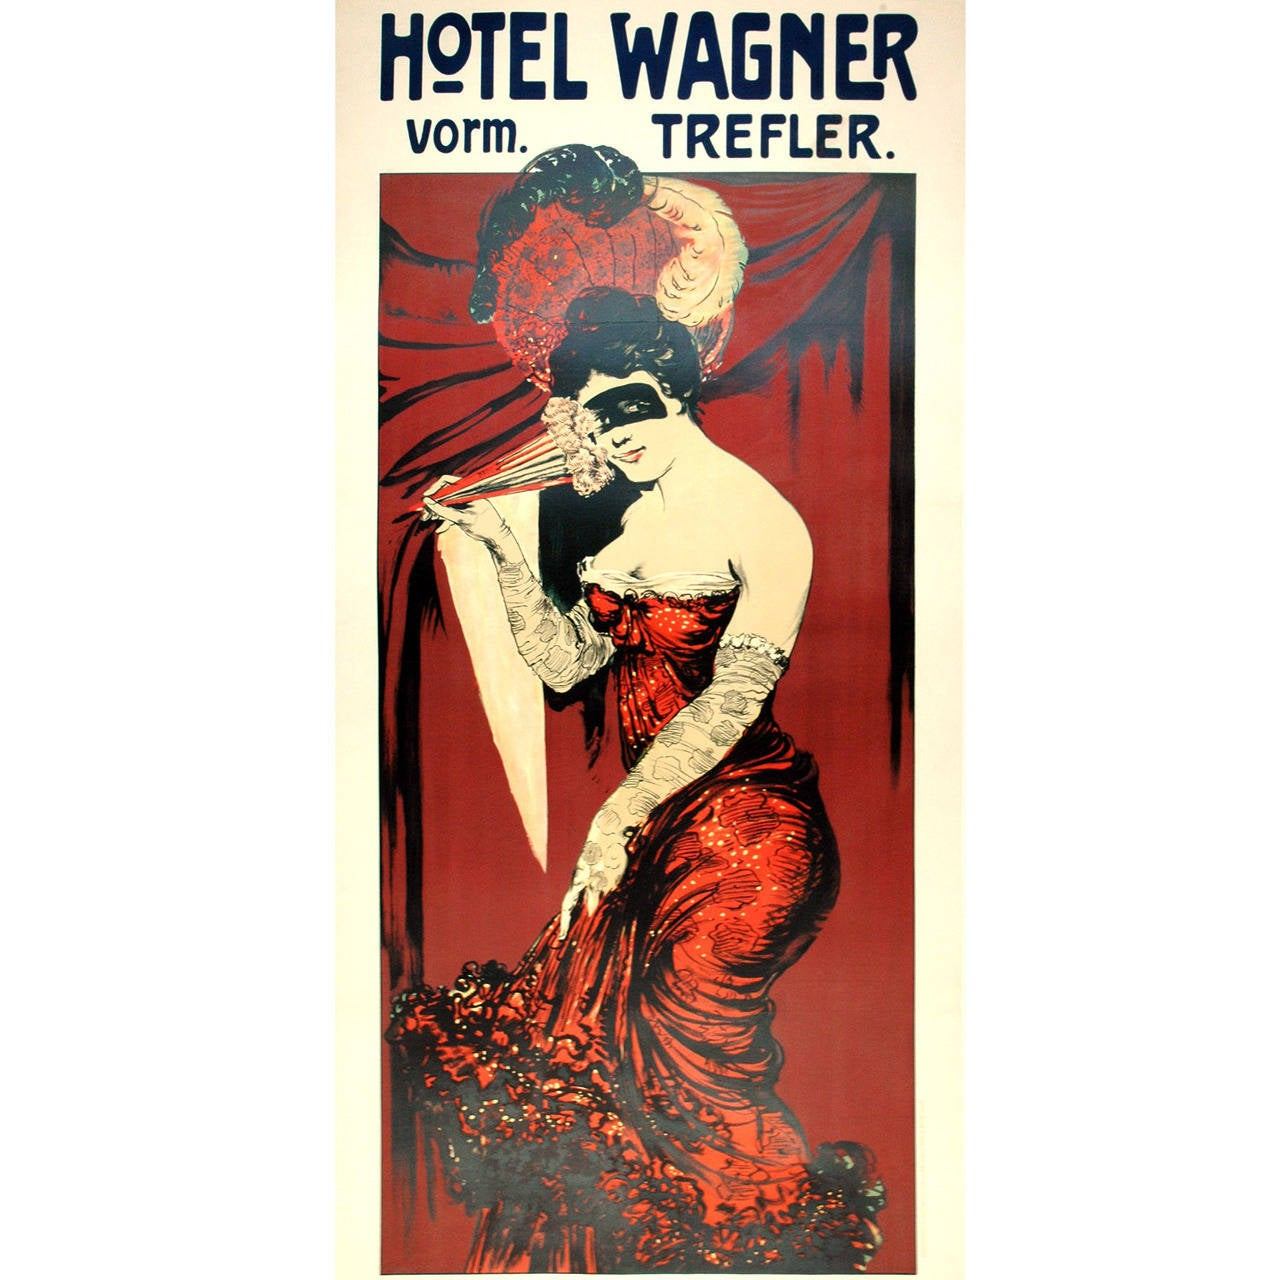 Hotel Wagner Fashion Advertising Poster For Sale at 1stdibs